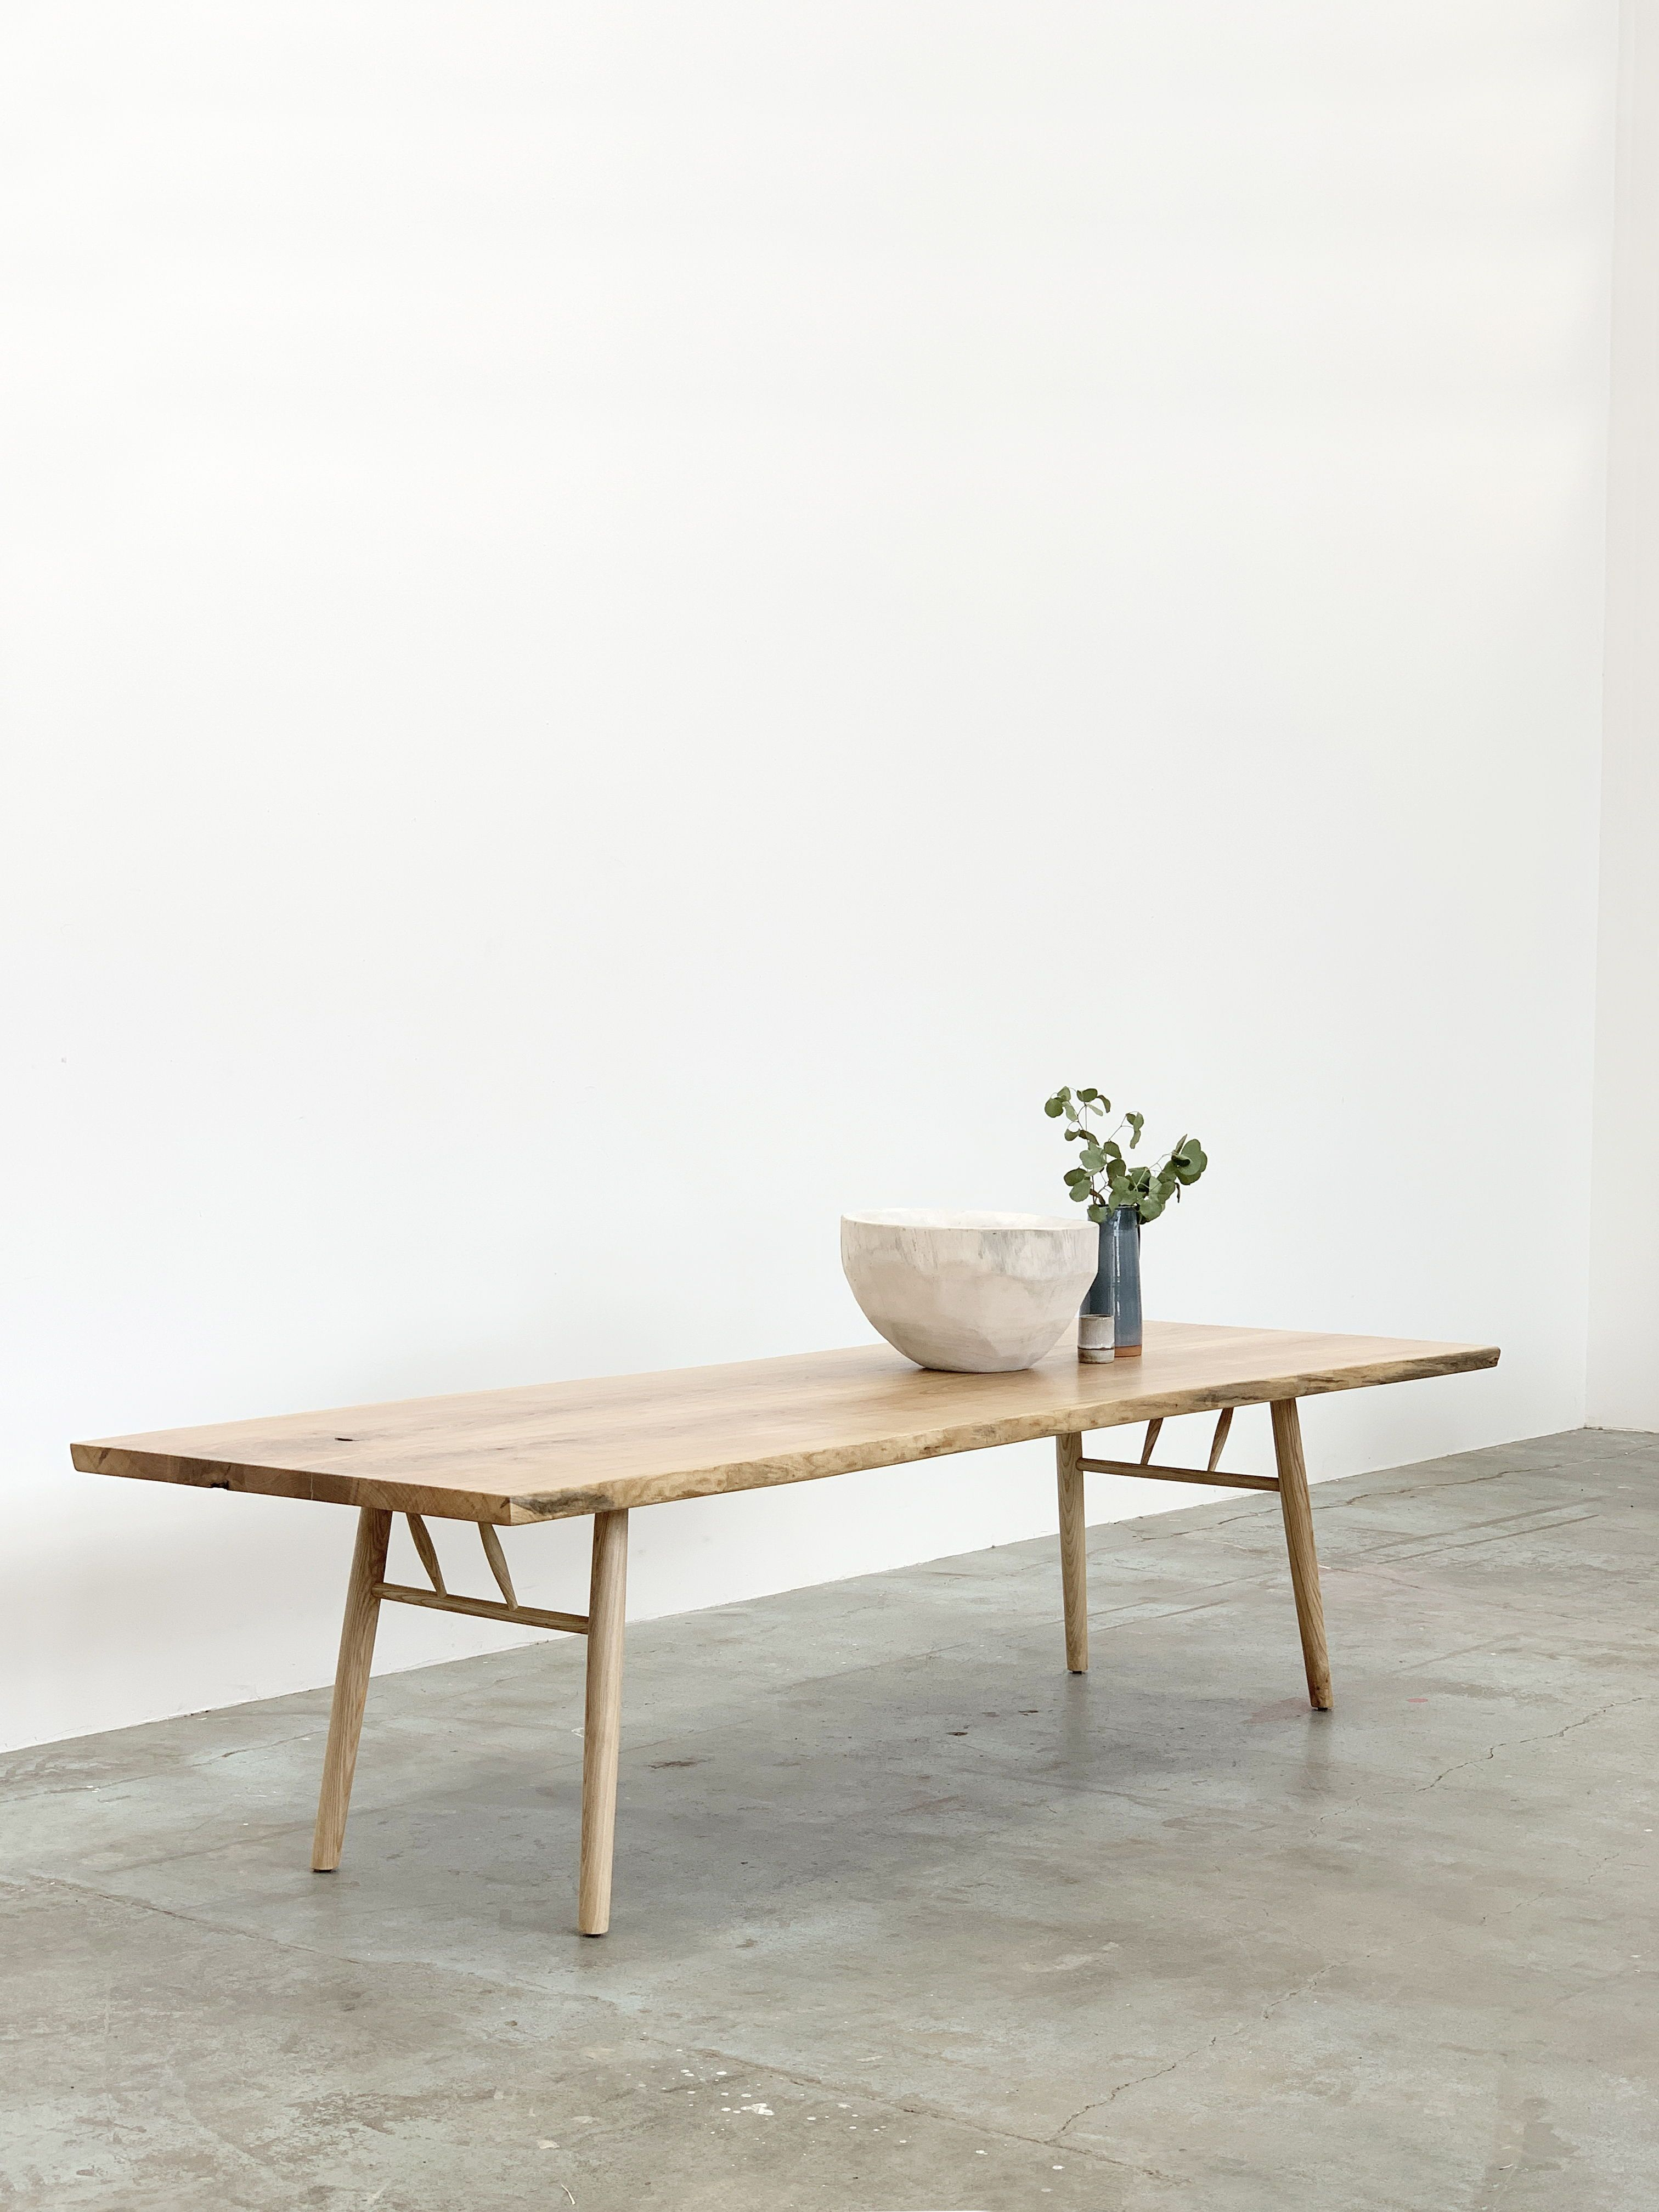 Mars Live Edge Dining Table White Ash With Wood Legs Live Edge Dining Table Dining Table Ash Dining Tables [ 4032 x 3024 Pixel ]